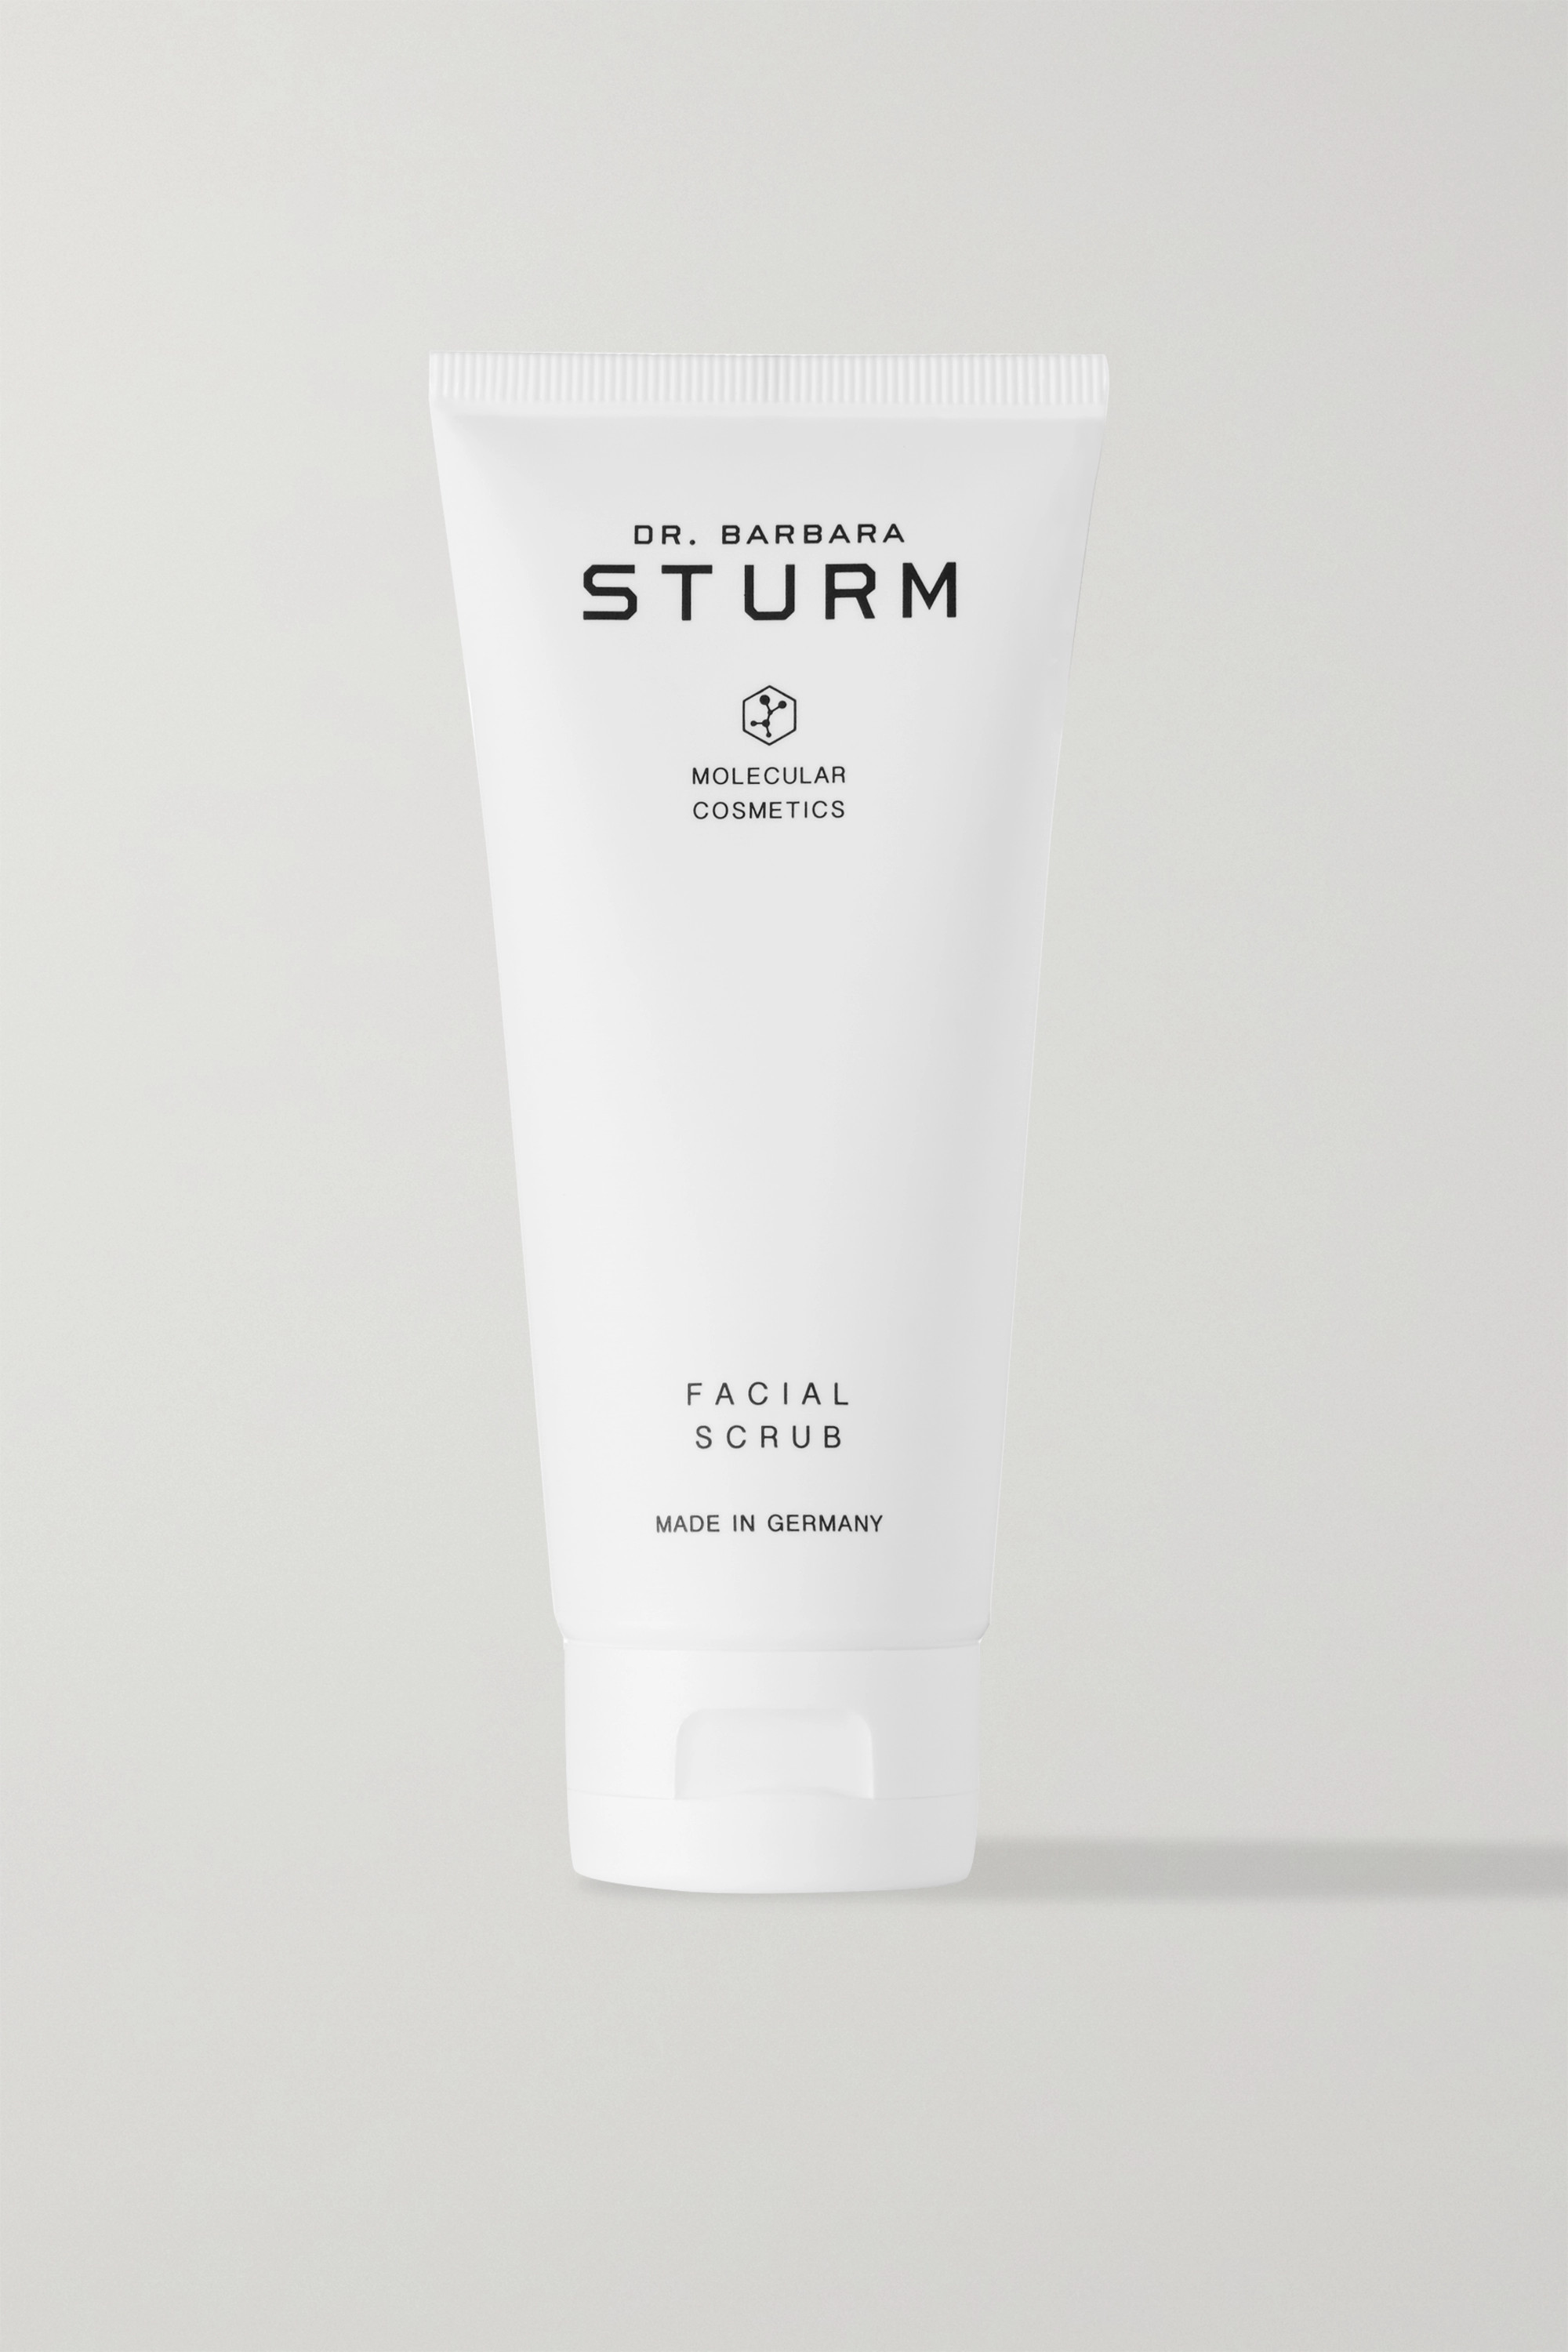 DR. BARBARA STURM Facial Scrub, 100ml